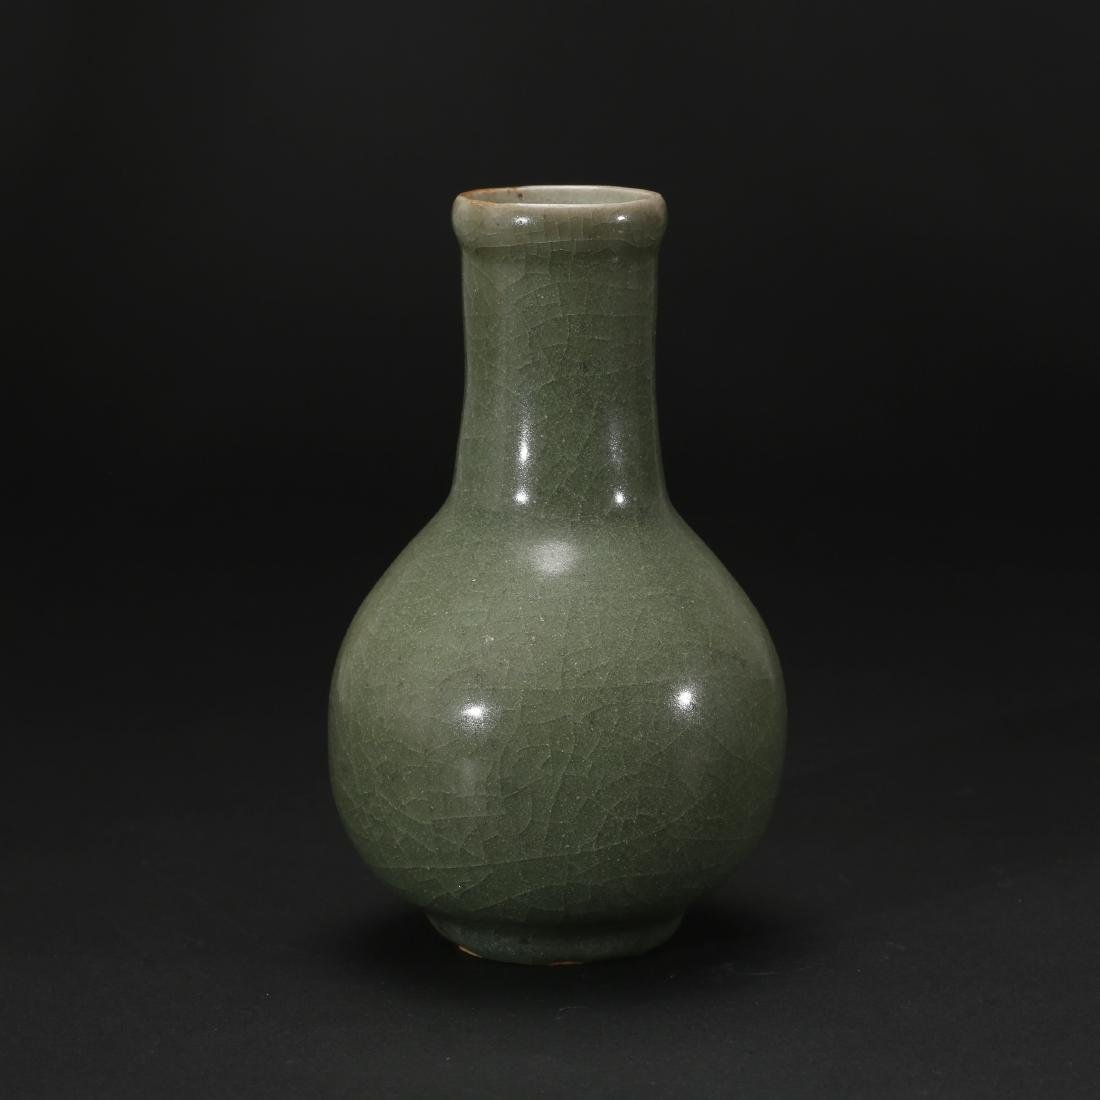 CHINESE CELADON GLAZED BOTTLE VASE